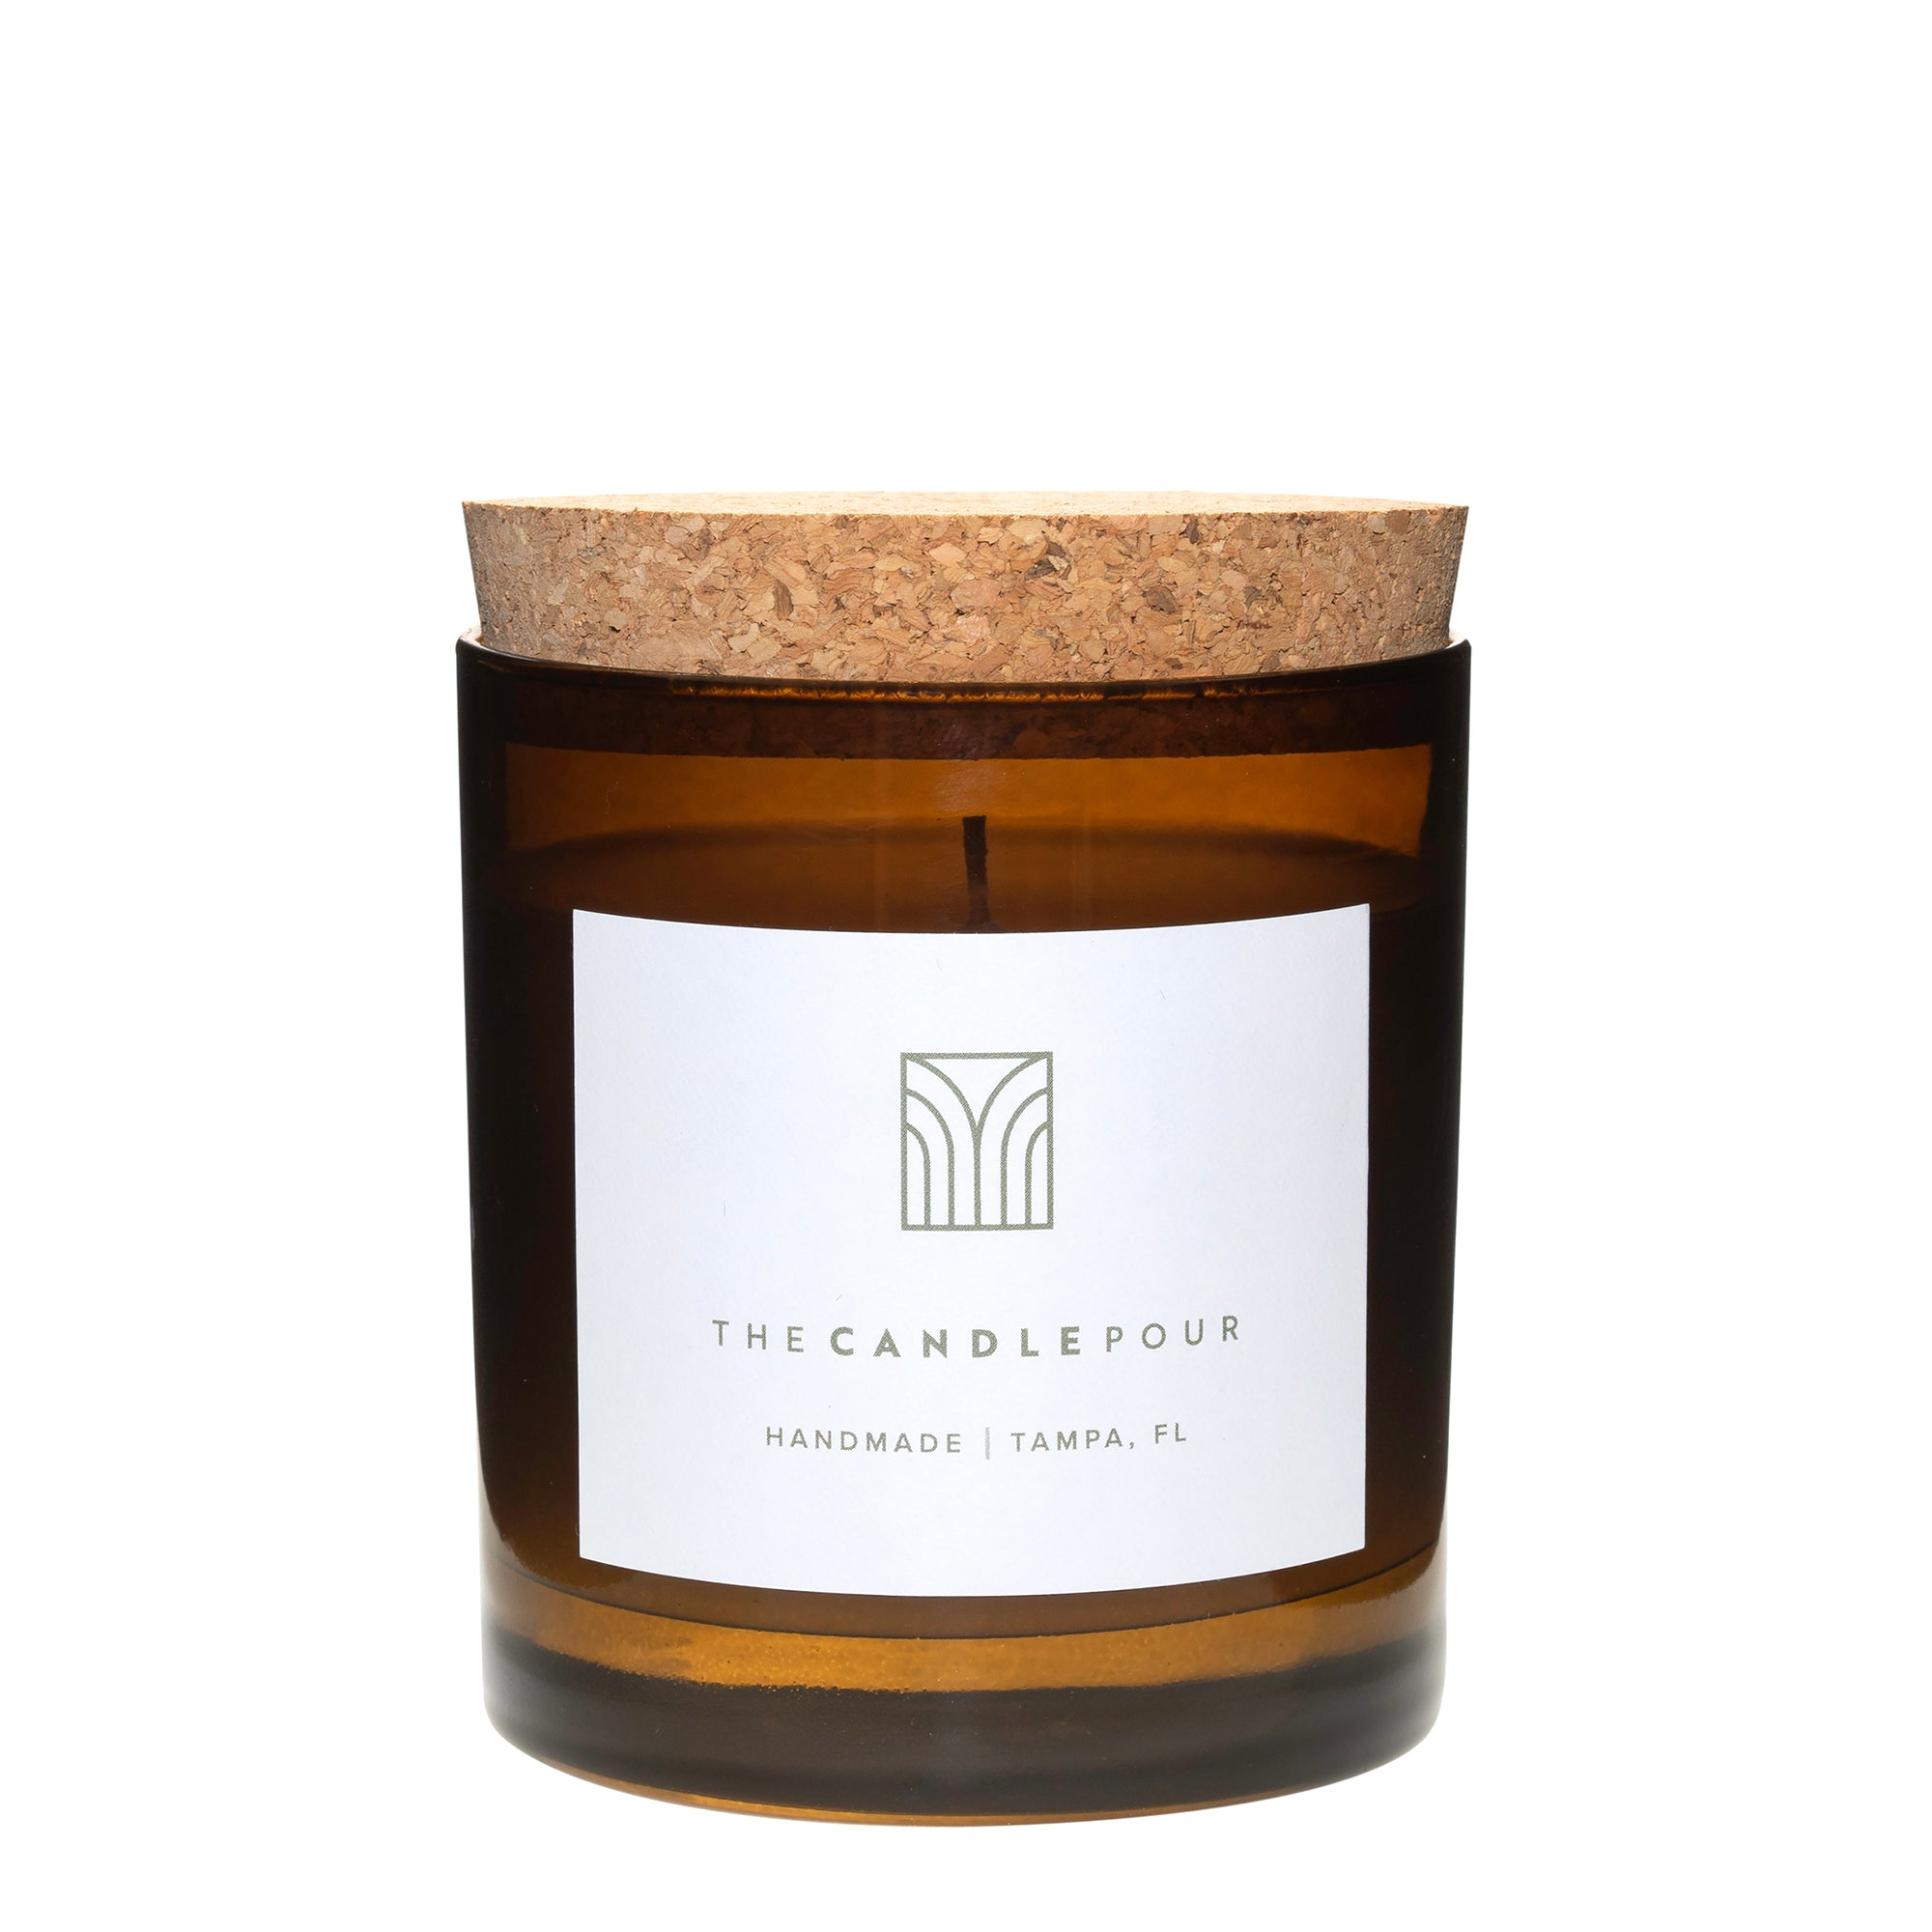 8 Ounce Soy Candle